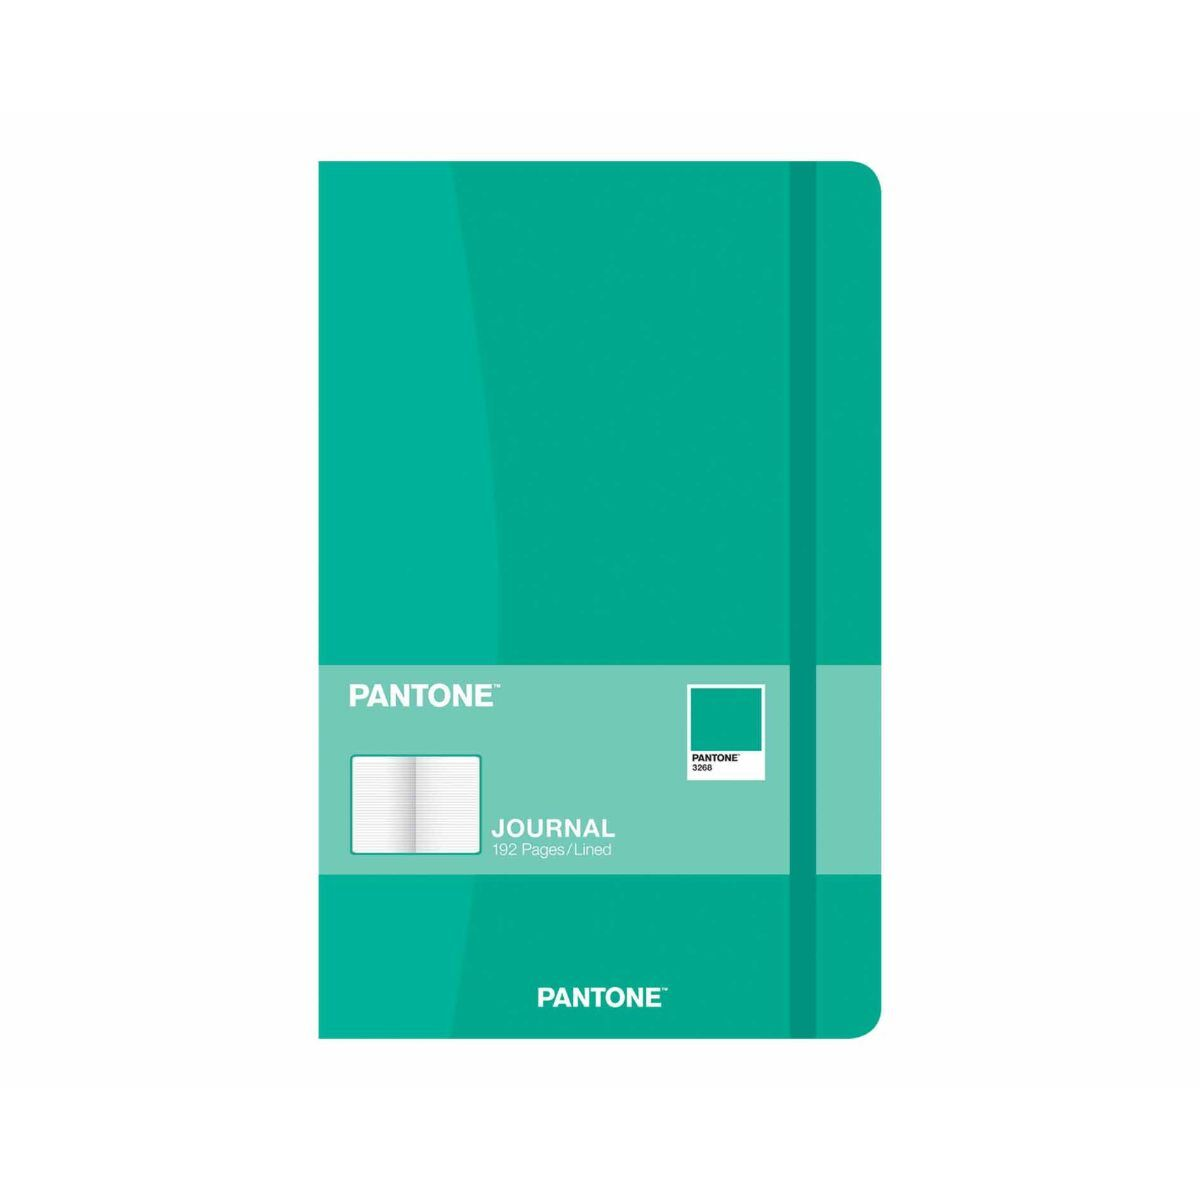 PANTONE Compact Journal Ruled 192 Pages Green